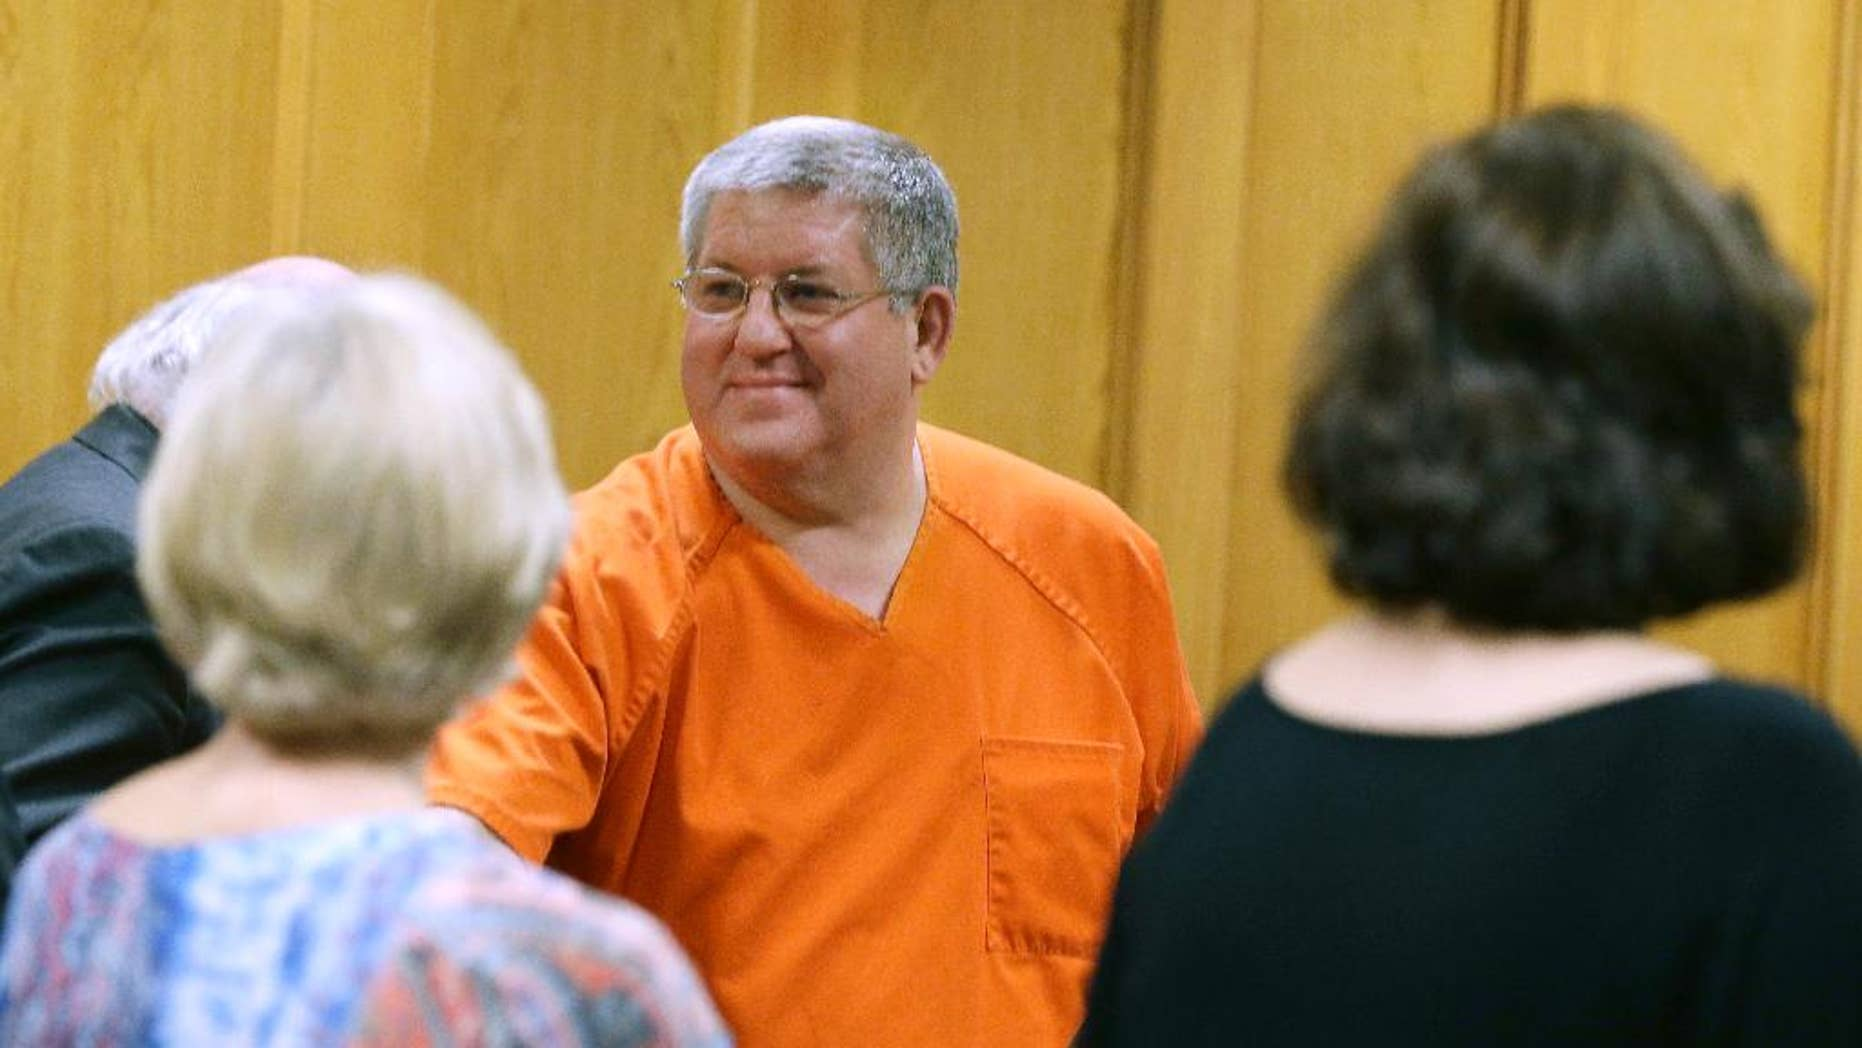 """File - In this May 6, 2014, file photo, Bernie Tiede smiles after a court hearing granting his release at the Panola County court house in Carthage, Texas.  Tiede had been sentenced to life for killing 81-year-old Marjorie Nugent. A state district judge is to hear pre-trial motions on Tuesday, March 31,2015, including one for the prosecutor's recusal, in the case that inspired the dark comedy """"Bernie."""" (AP Photo/LM Otero, File)"""